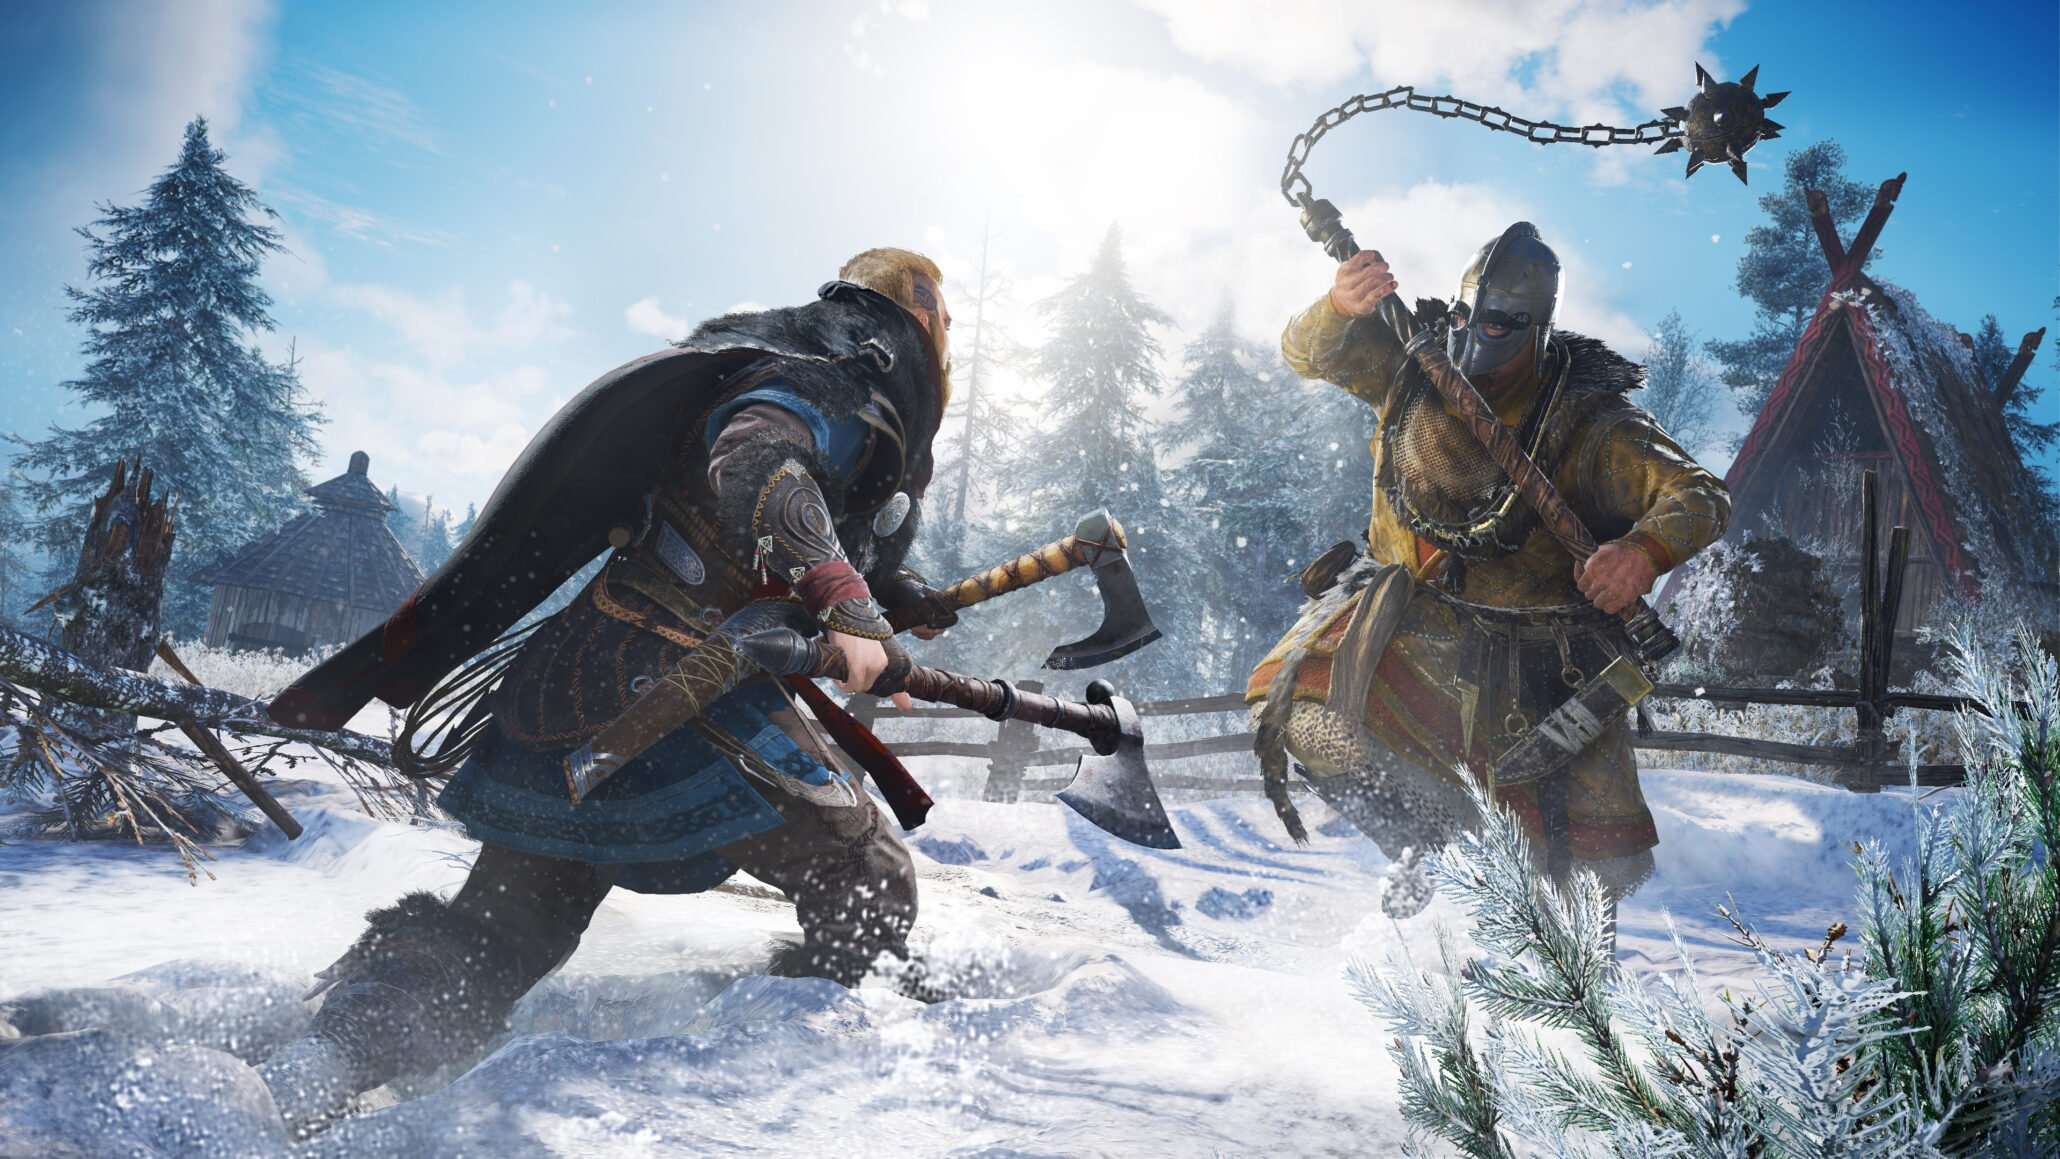 Assassin's Creed Valhalla Will Have Cross Generation Progression For PlayStation 5 And Xbox Series X/S